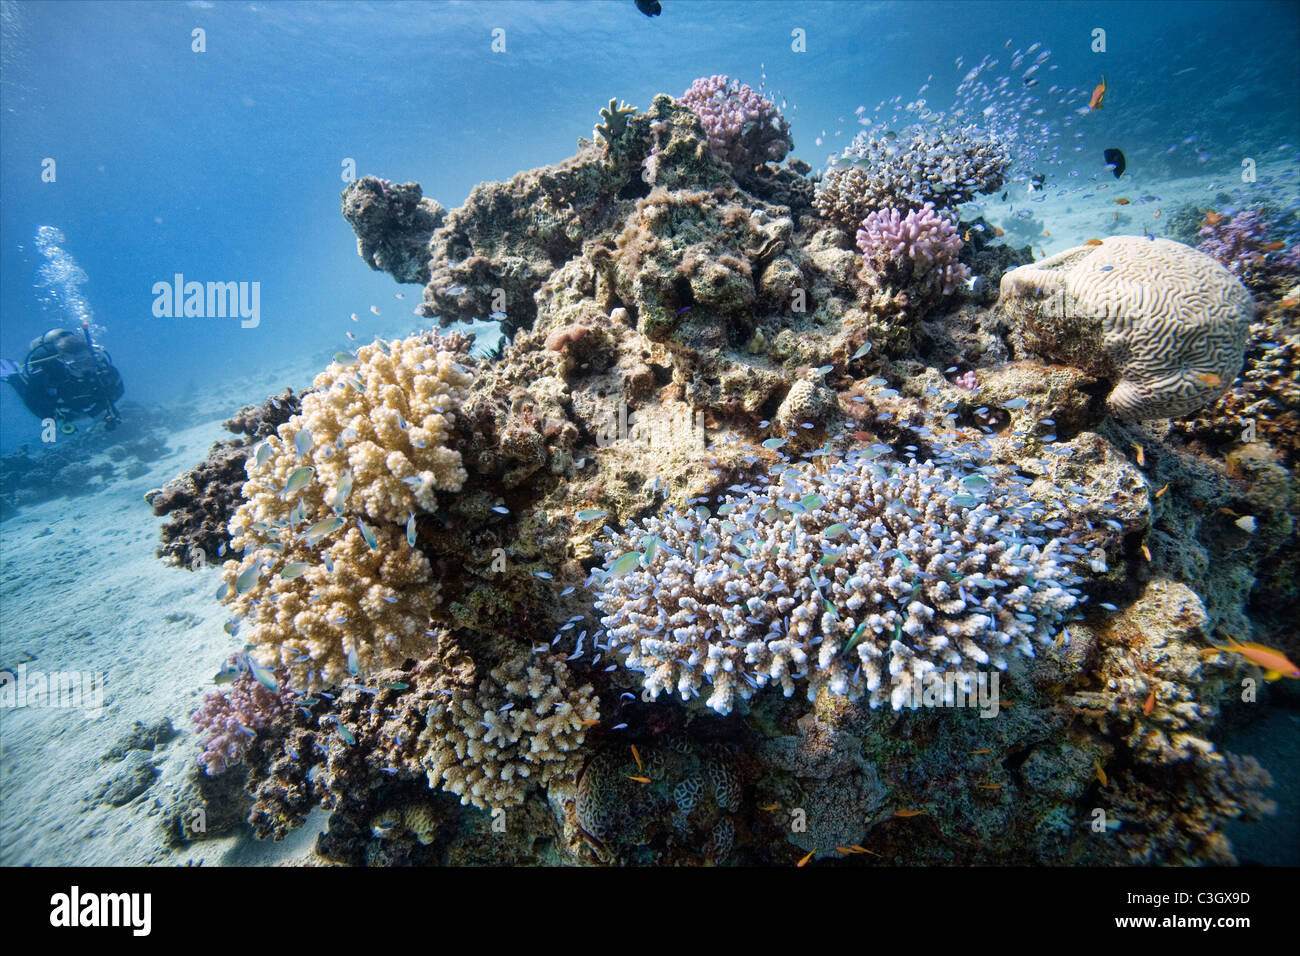 Coral reef in the Red Sea, Dahab, Egypt - Stock Image